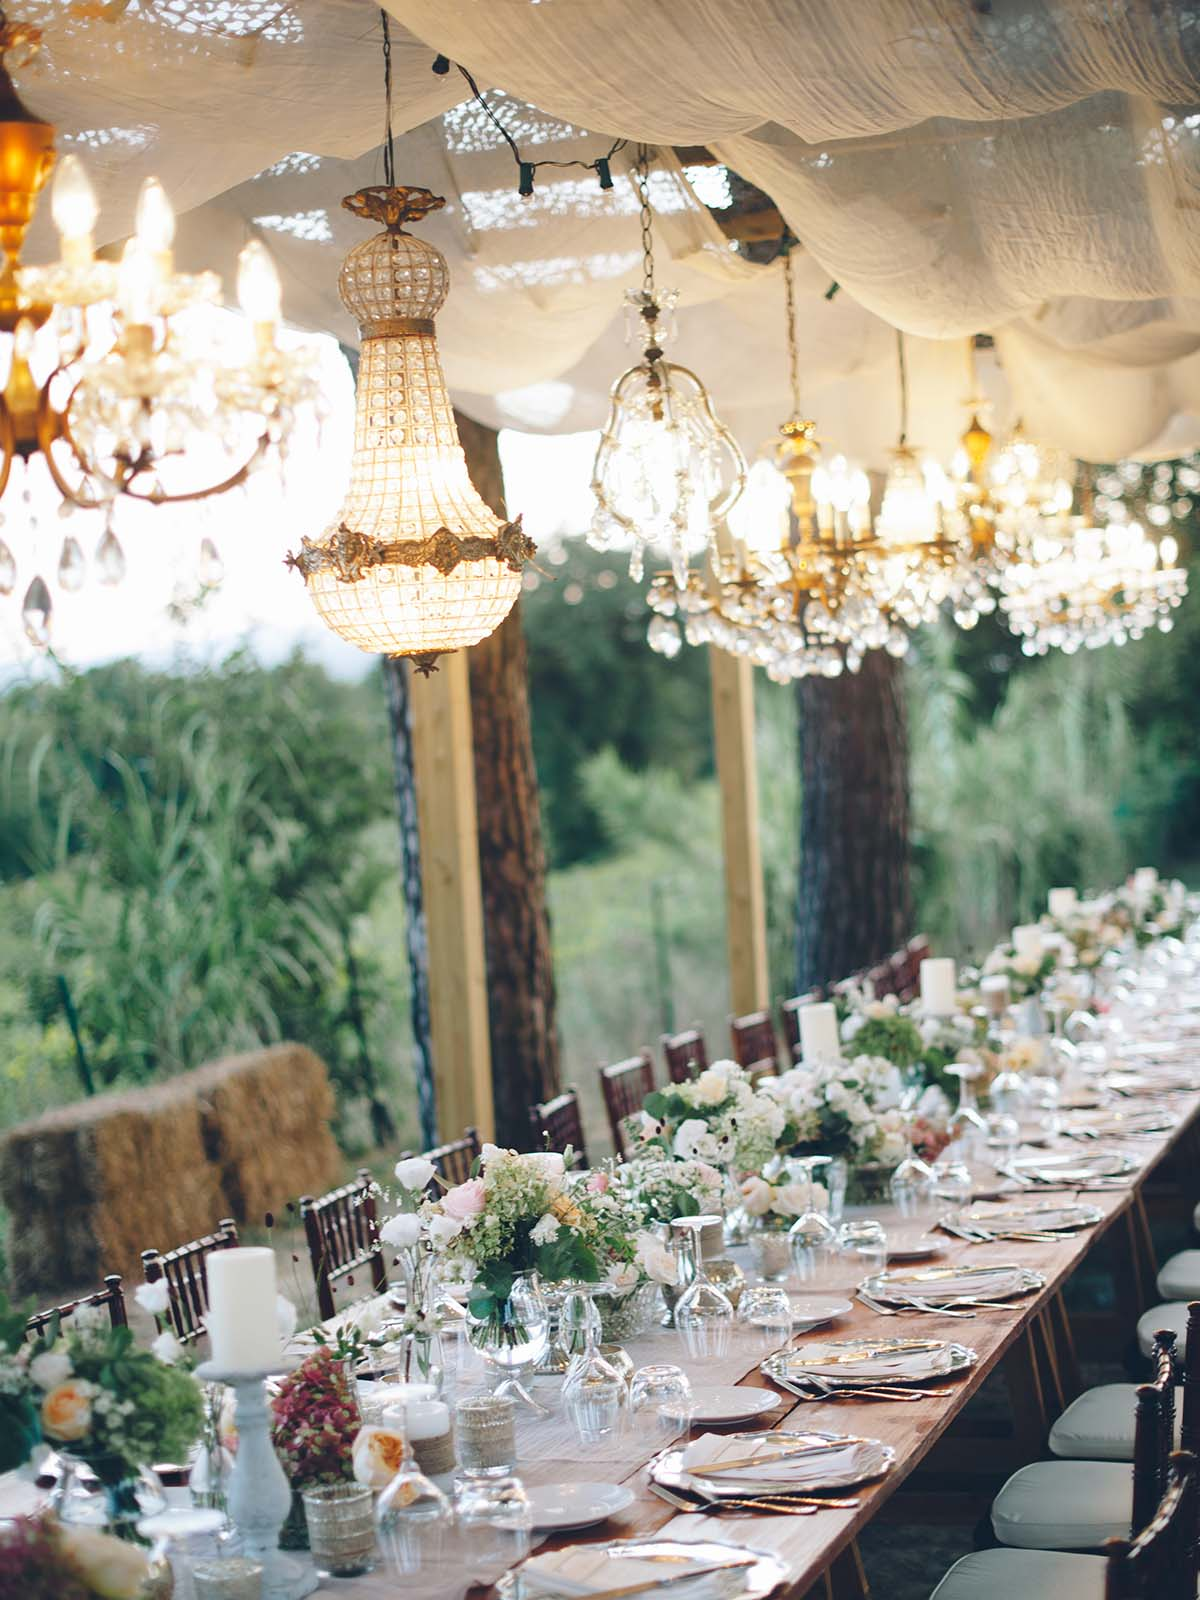 Tuscany-wedding-with-chandeliers-and-long-table